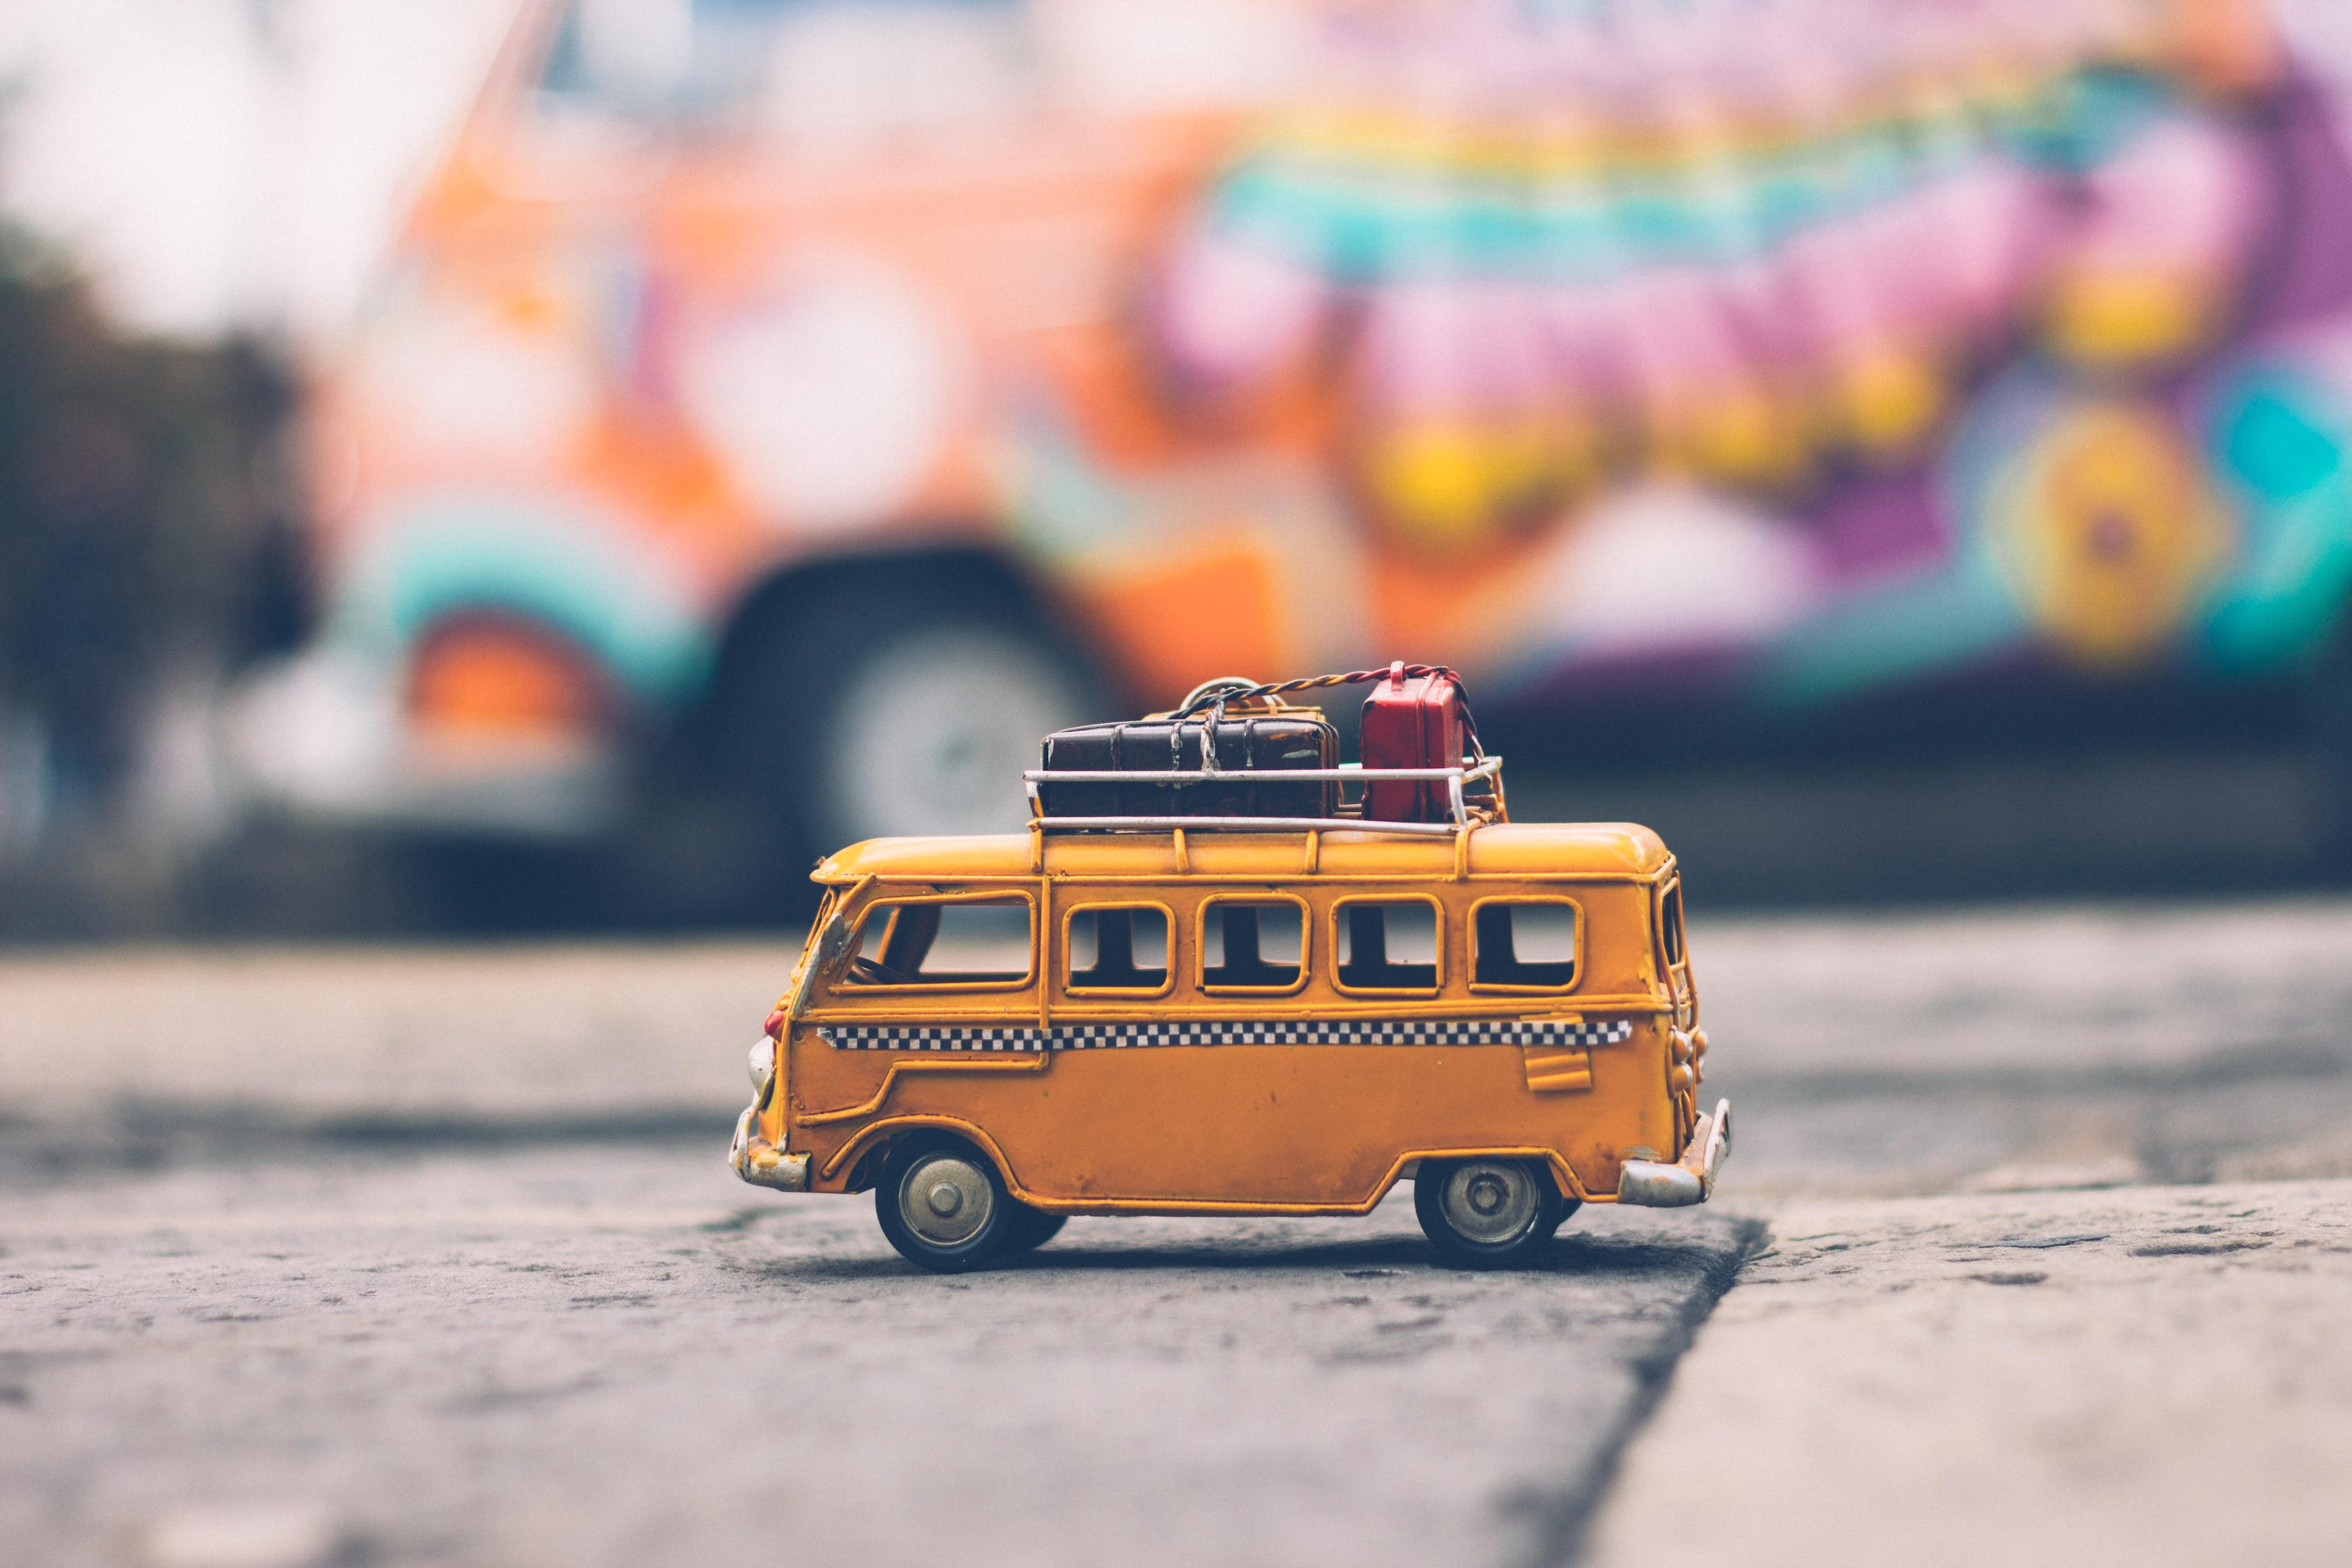 Selective Focus Photography of Yellow School Bus Die-cast